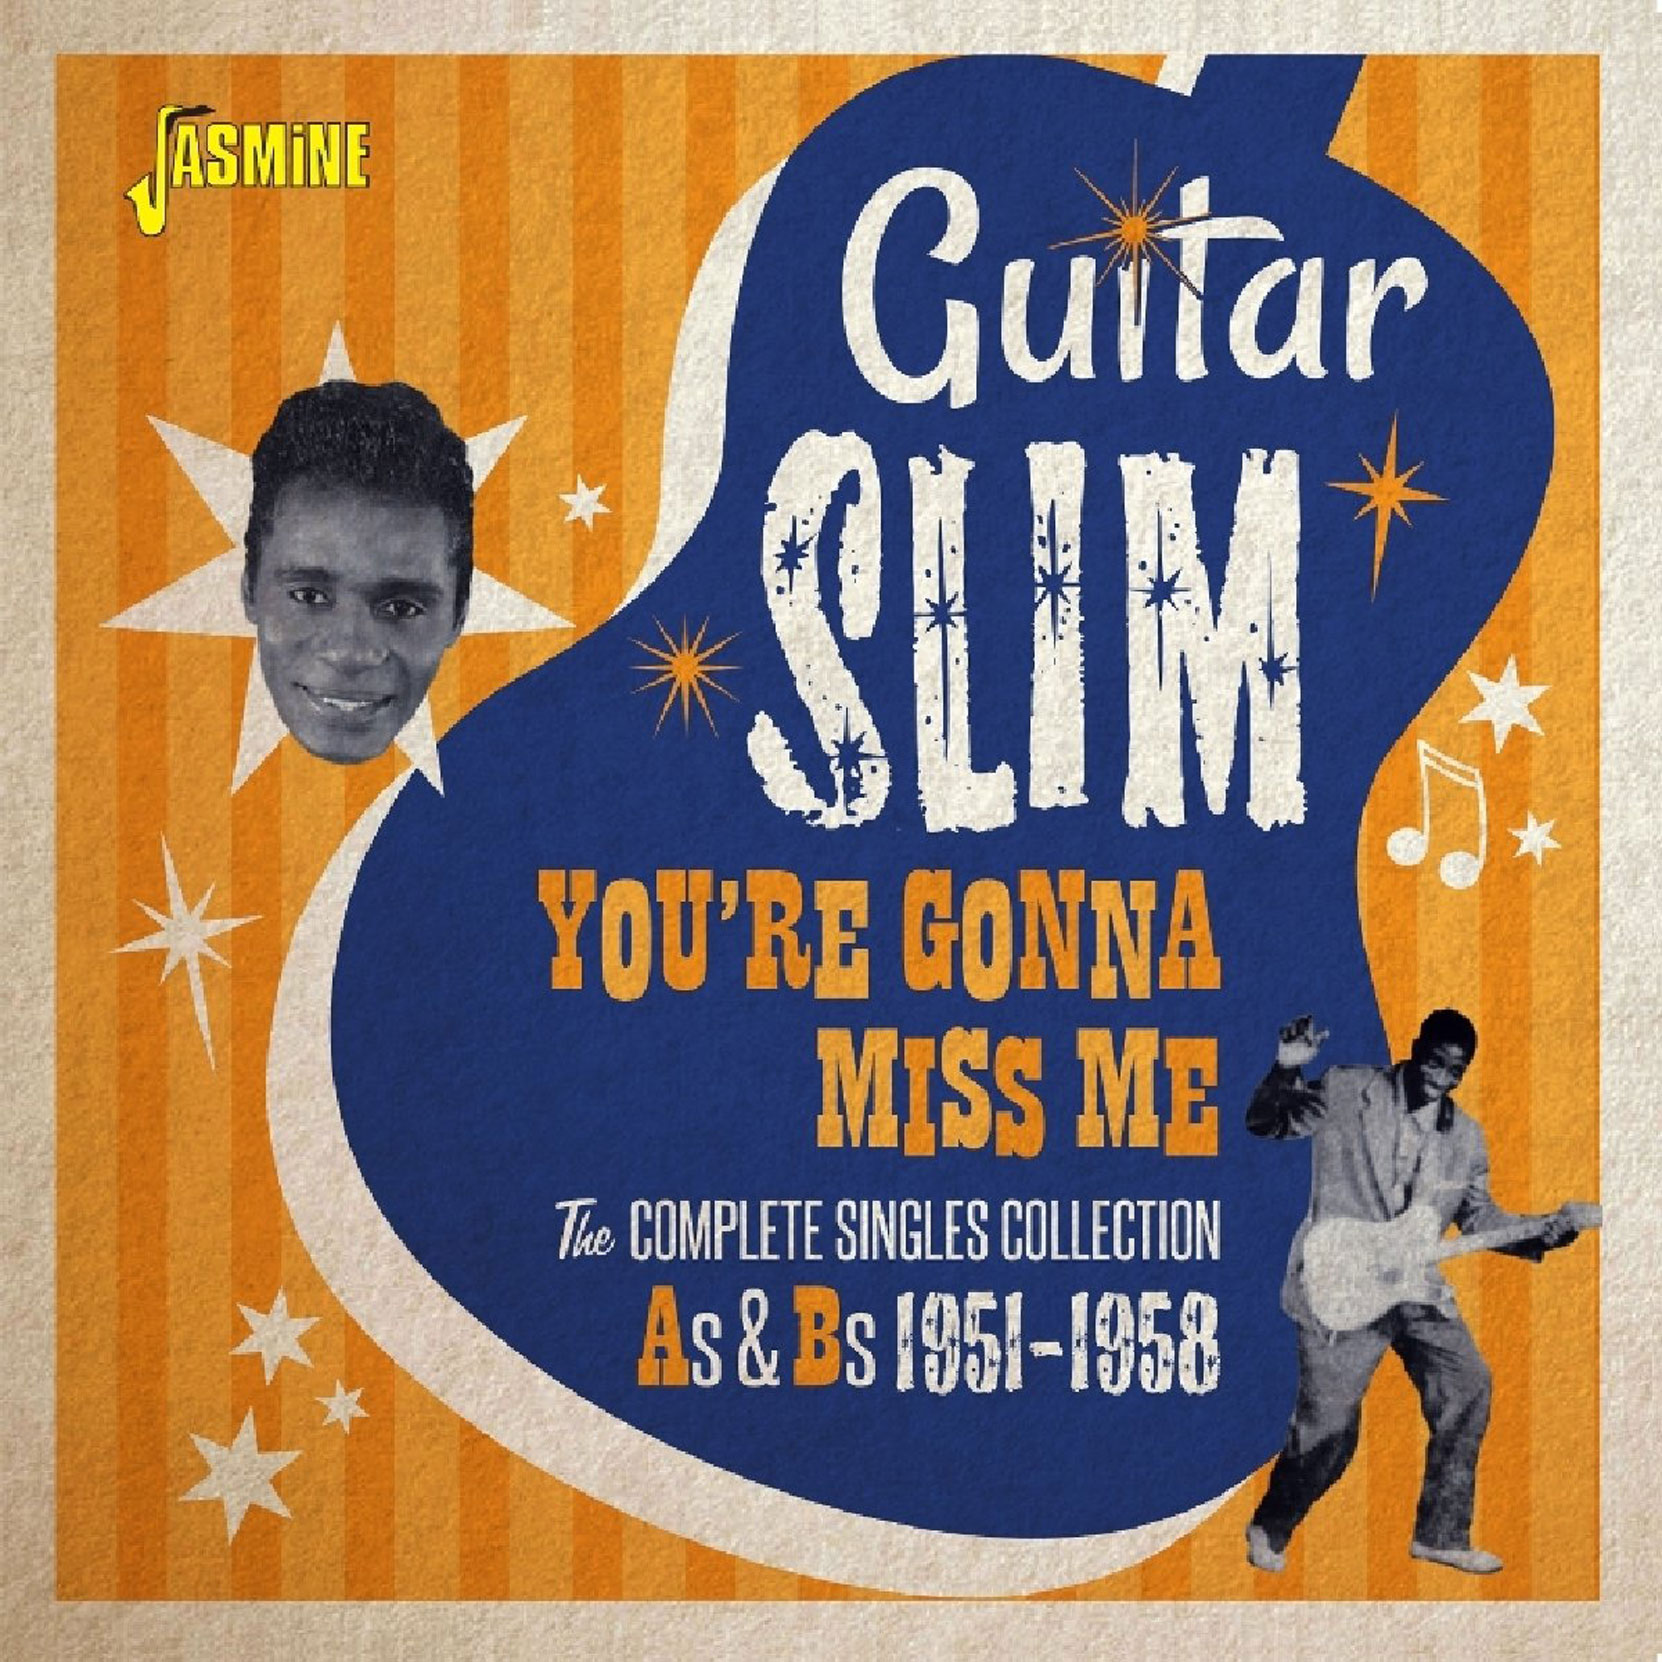 Guitar Slim - You're Gonna Miss Me: The Complete Singles Collection As & Bs 1951-1958, released on Jasmine Records. CD cover.